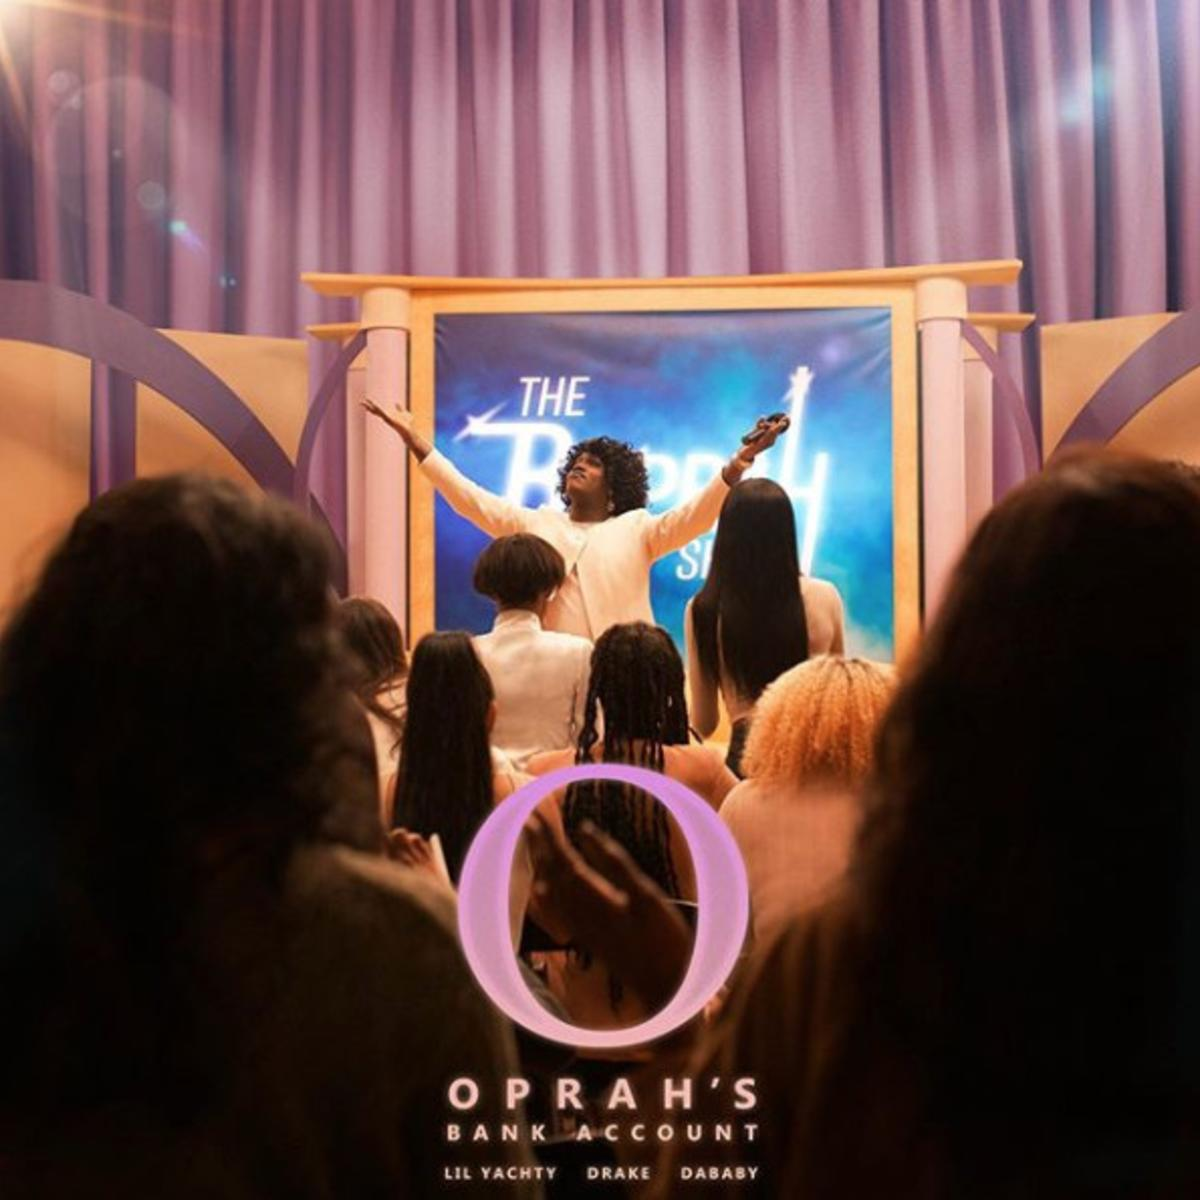 DOWNLOAD MP3 Lil Yachty Ft Drake & Dababy - Oprah's Bank Account